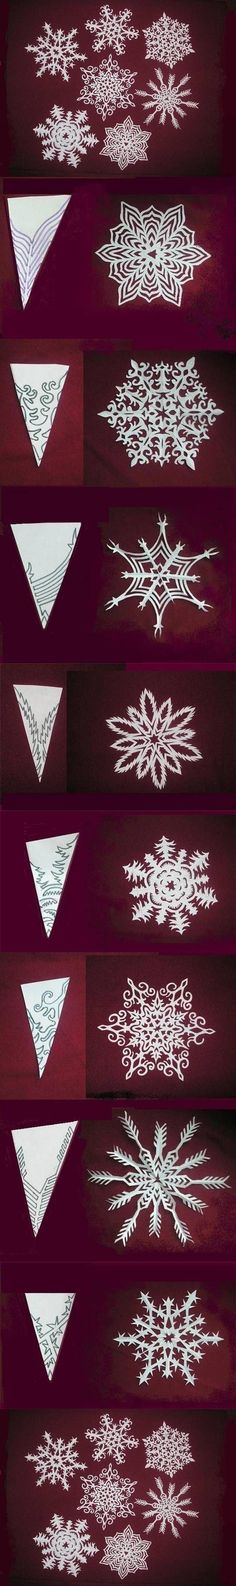 Snowflake cut out tutorial